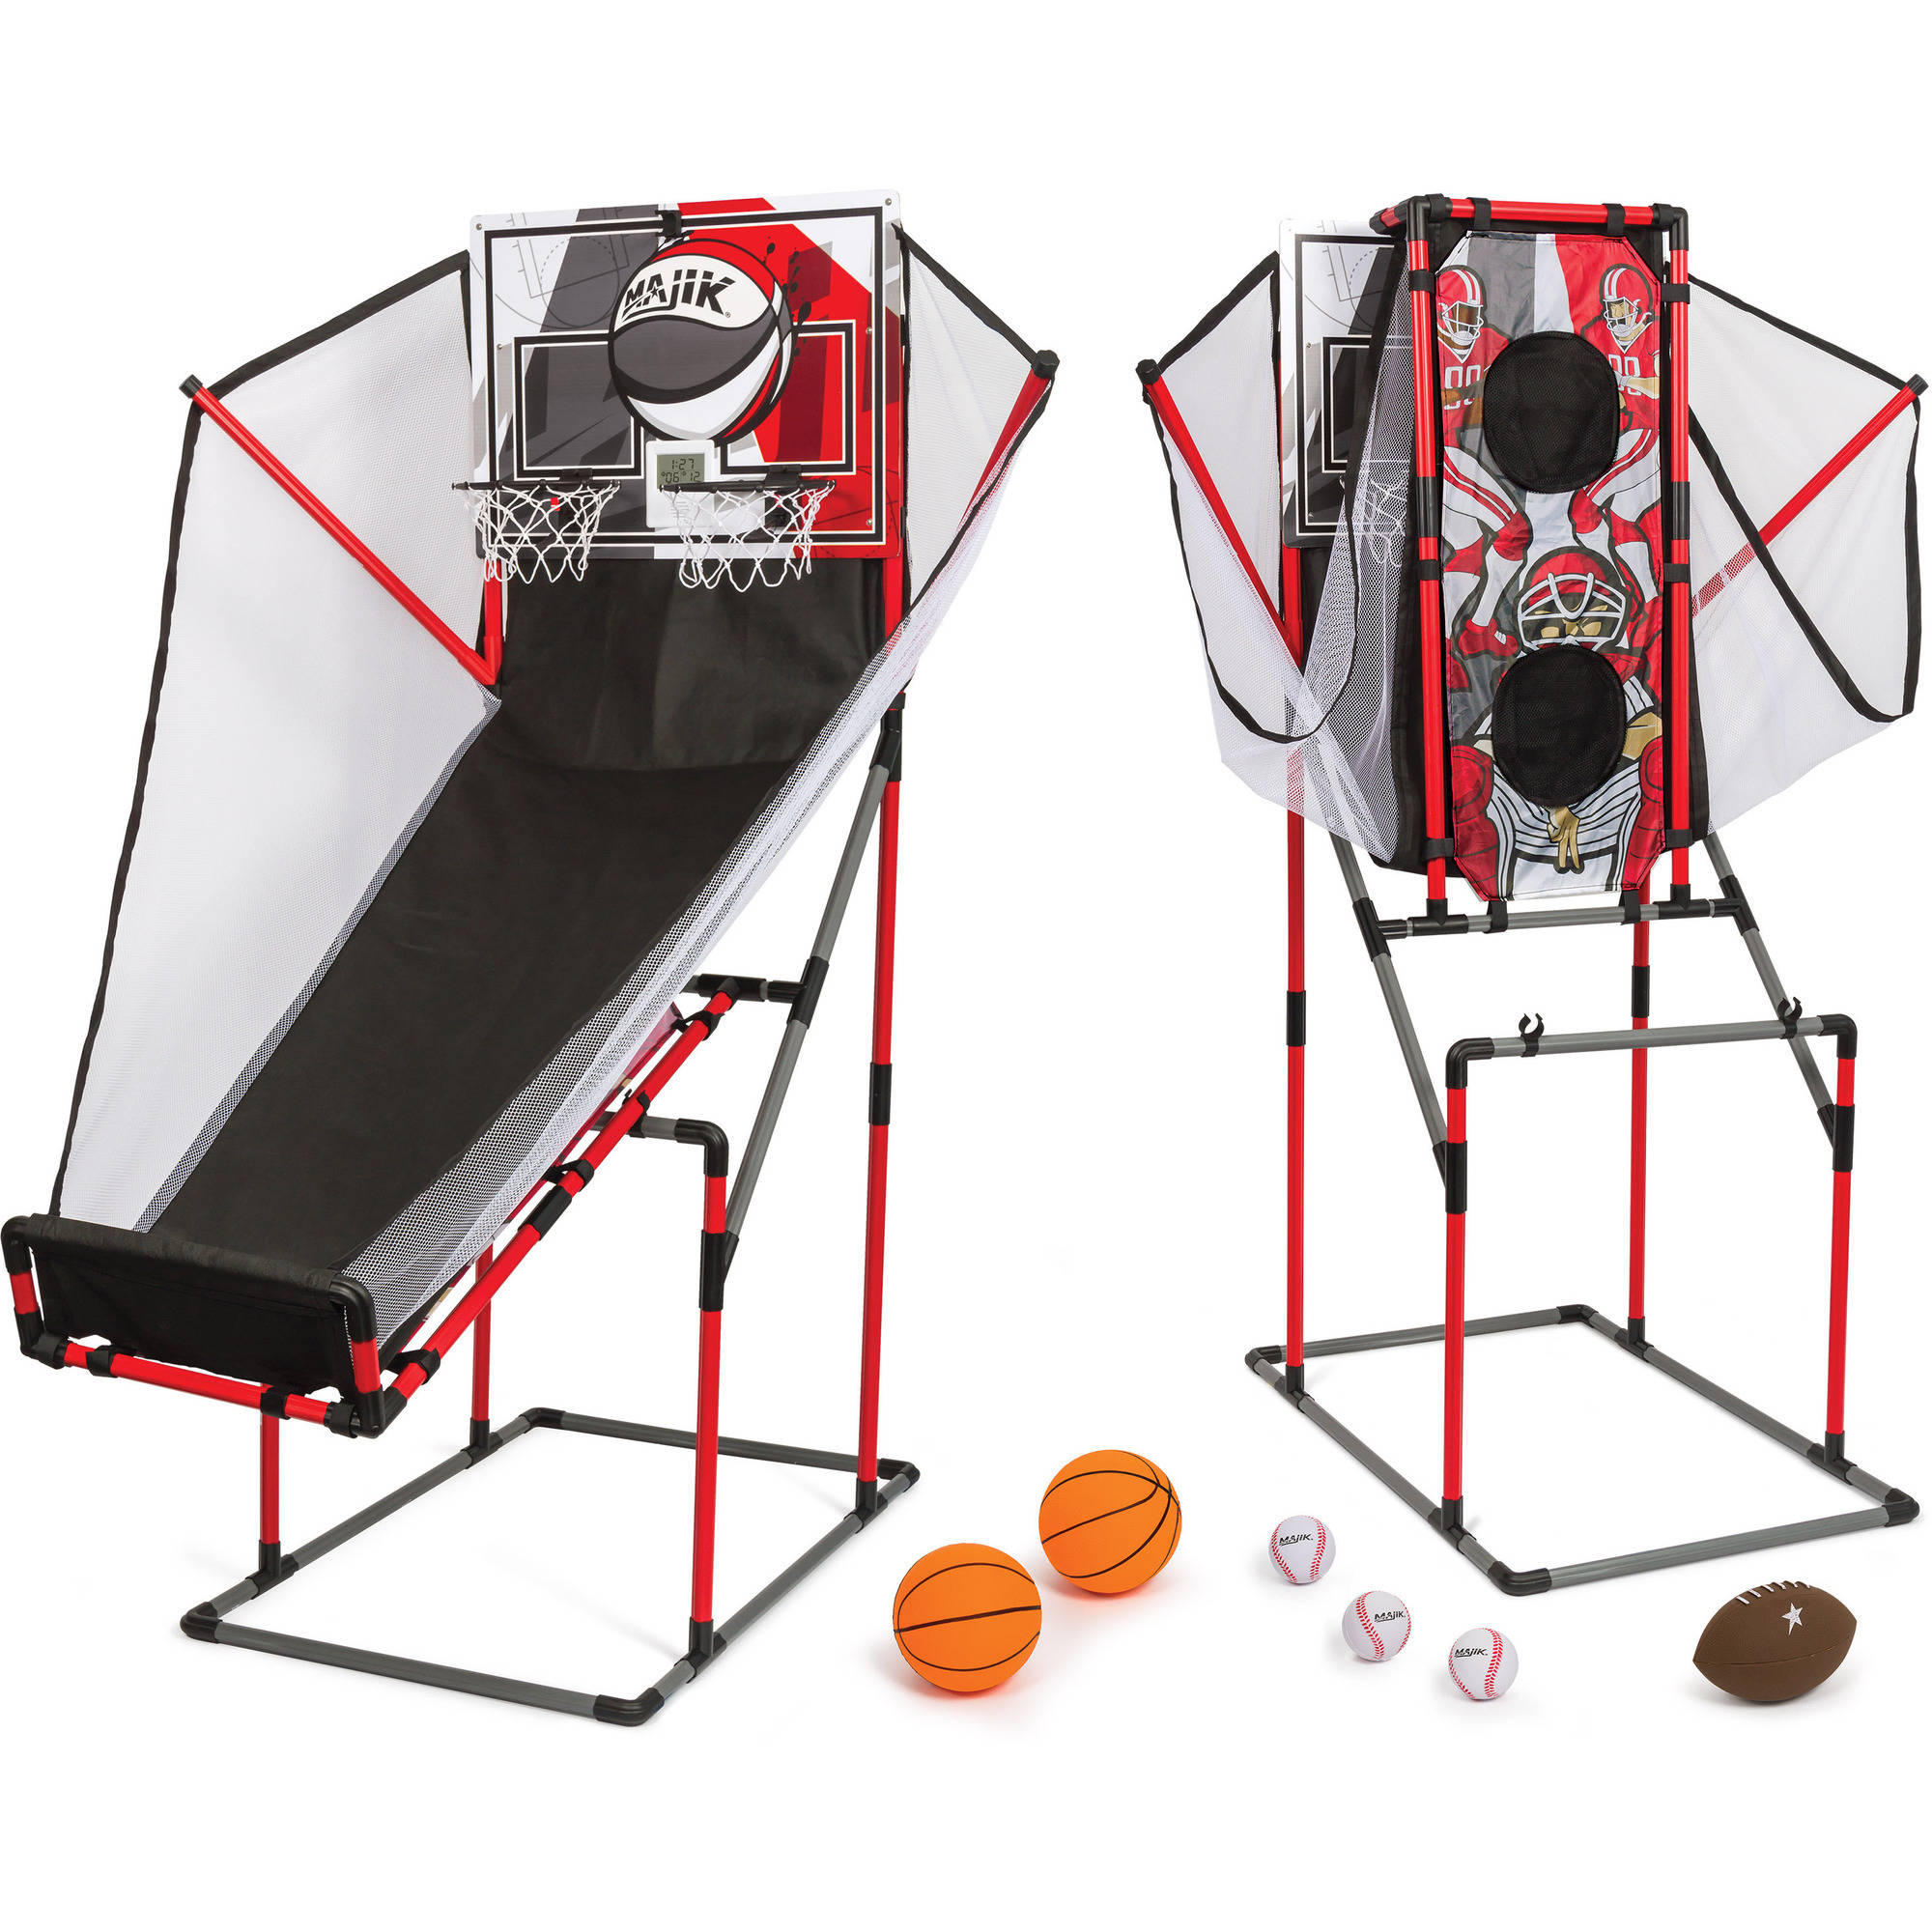 Majik 3-in-1 Arcade Sport Center Game System